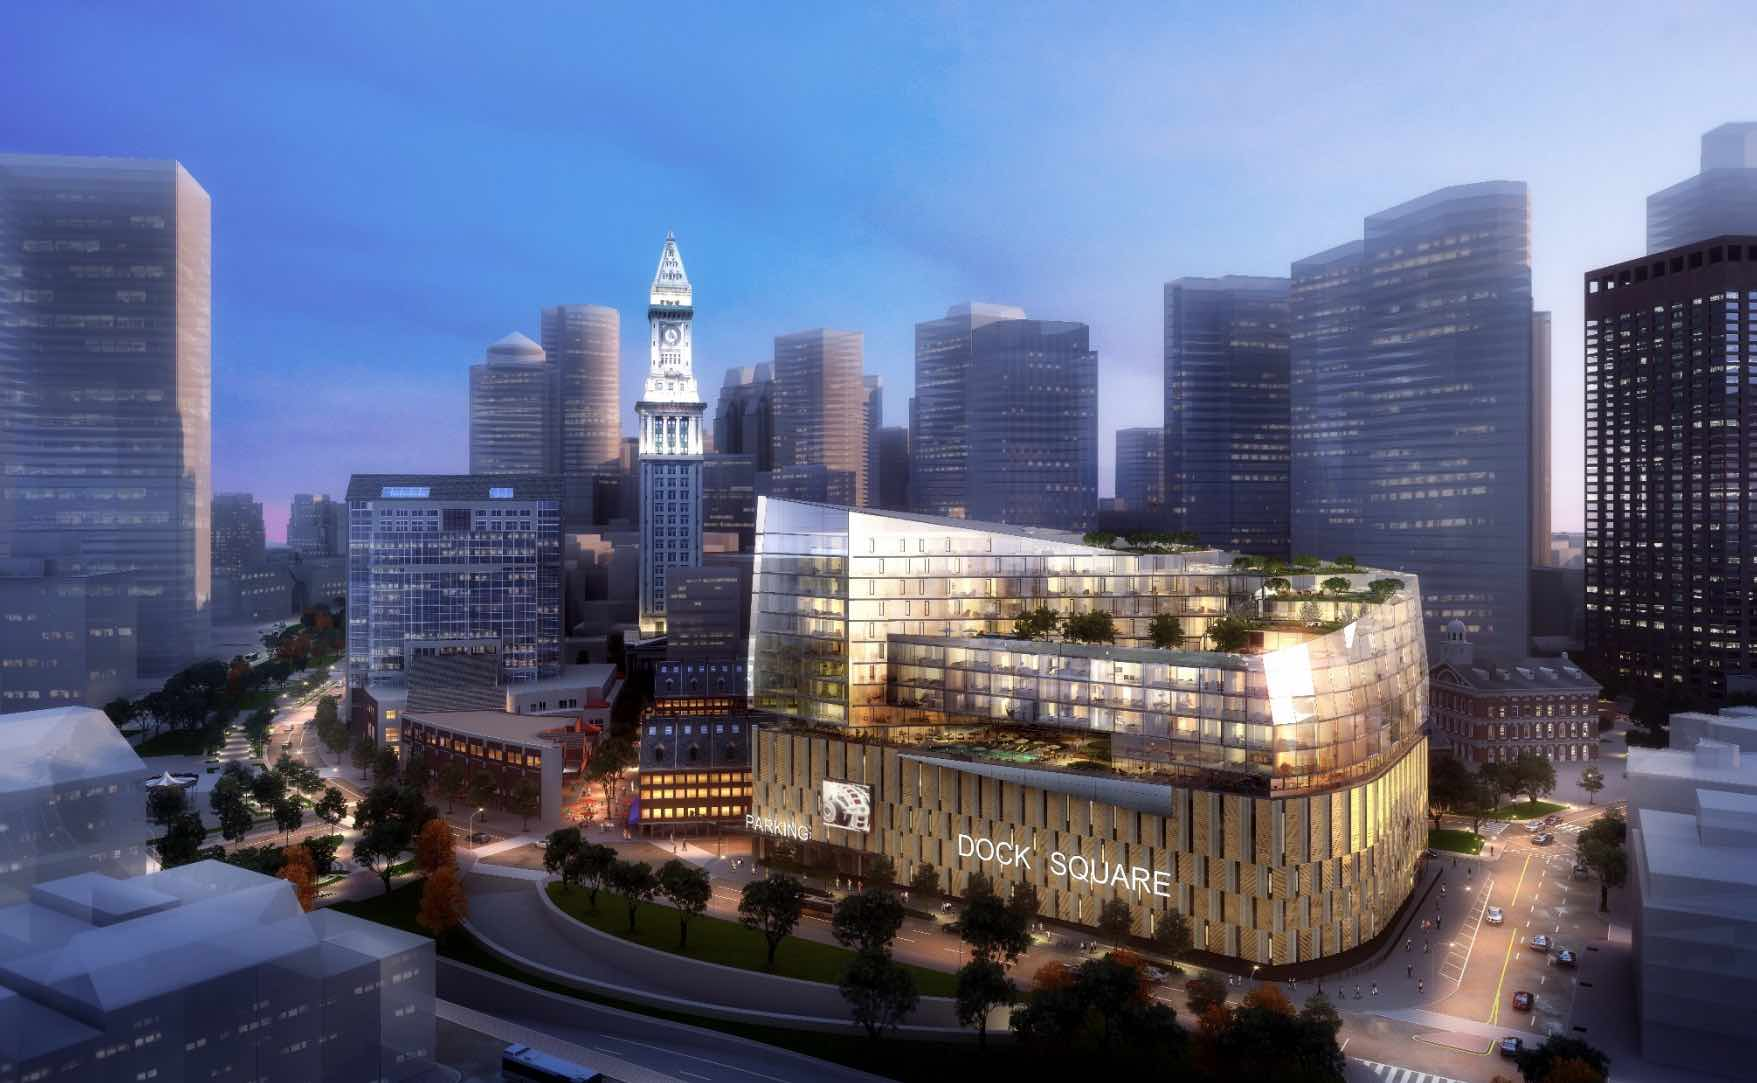 Fortis Property Group plans a 10-storey, 253,000-square-foot spiral-shaped addition atop an existing garage: Dock Square Garage project, 20 Clinton Street, Bulfinch Triangle, Boston (BLDUP/15.02.2018)